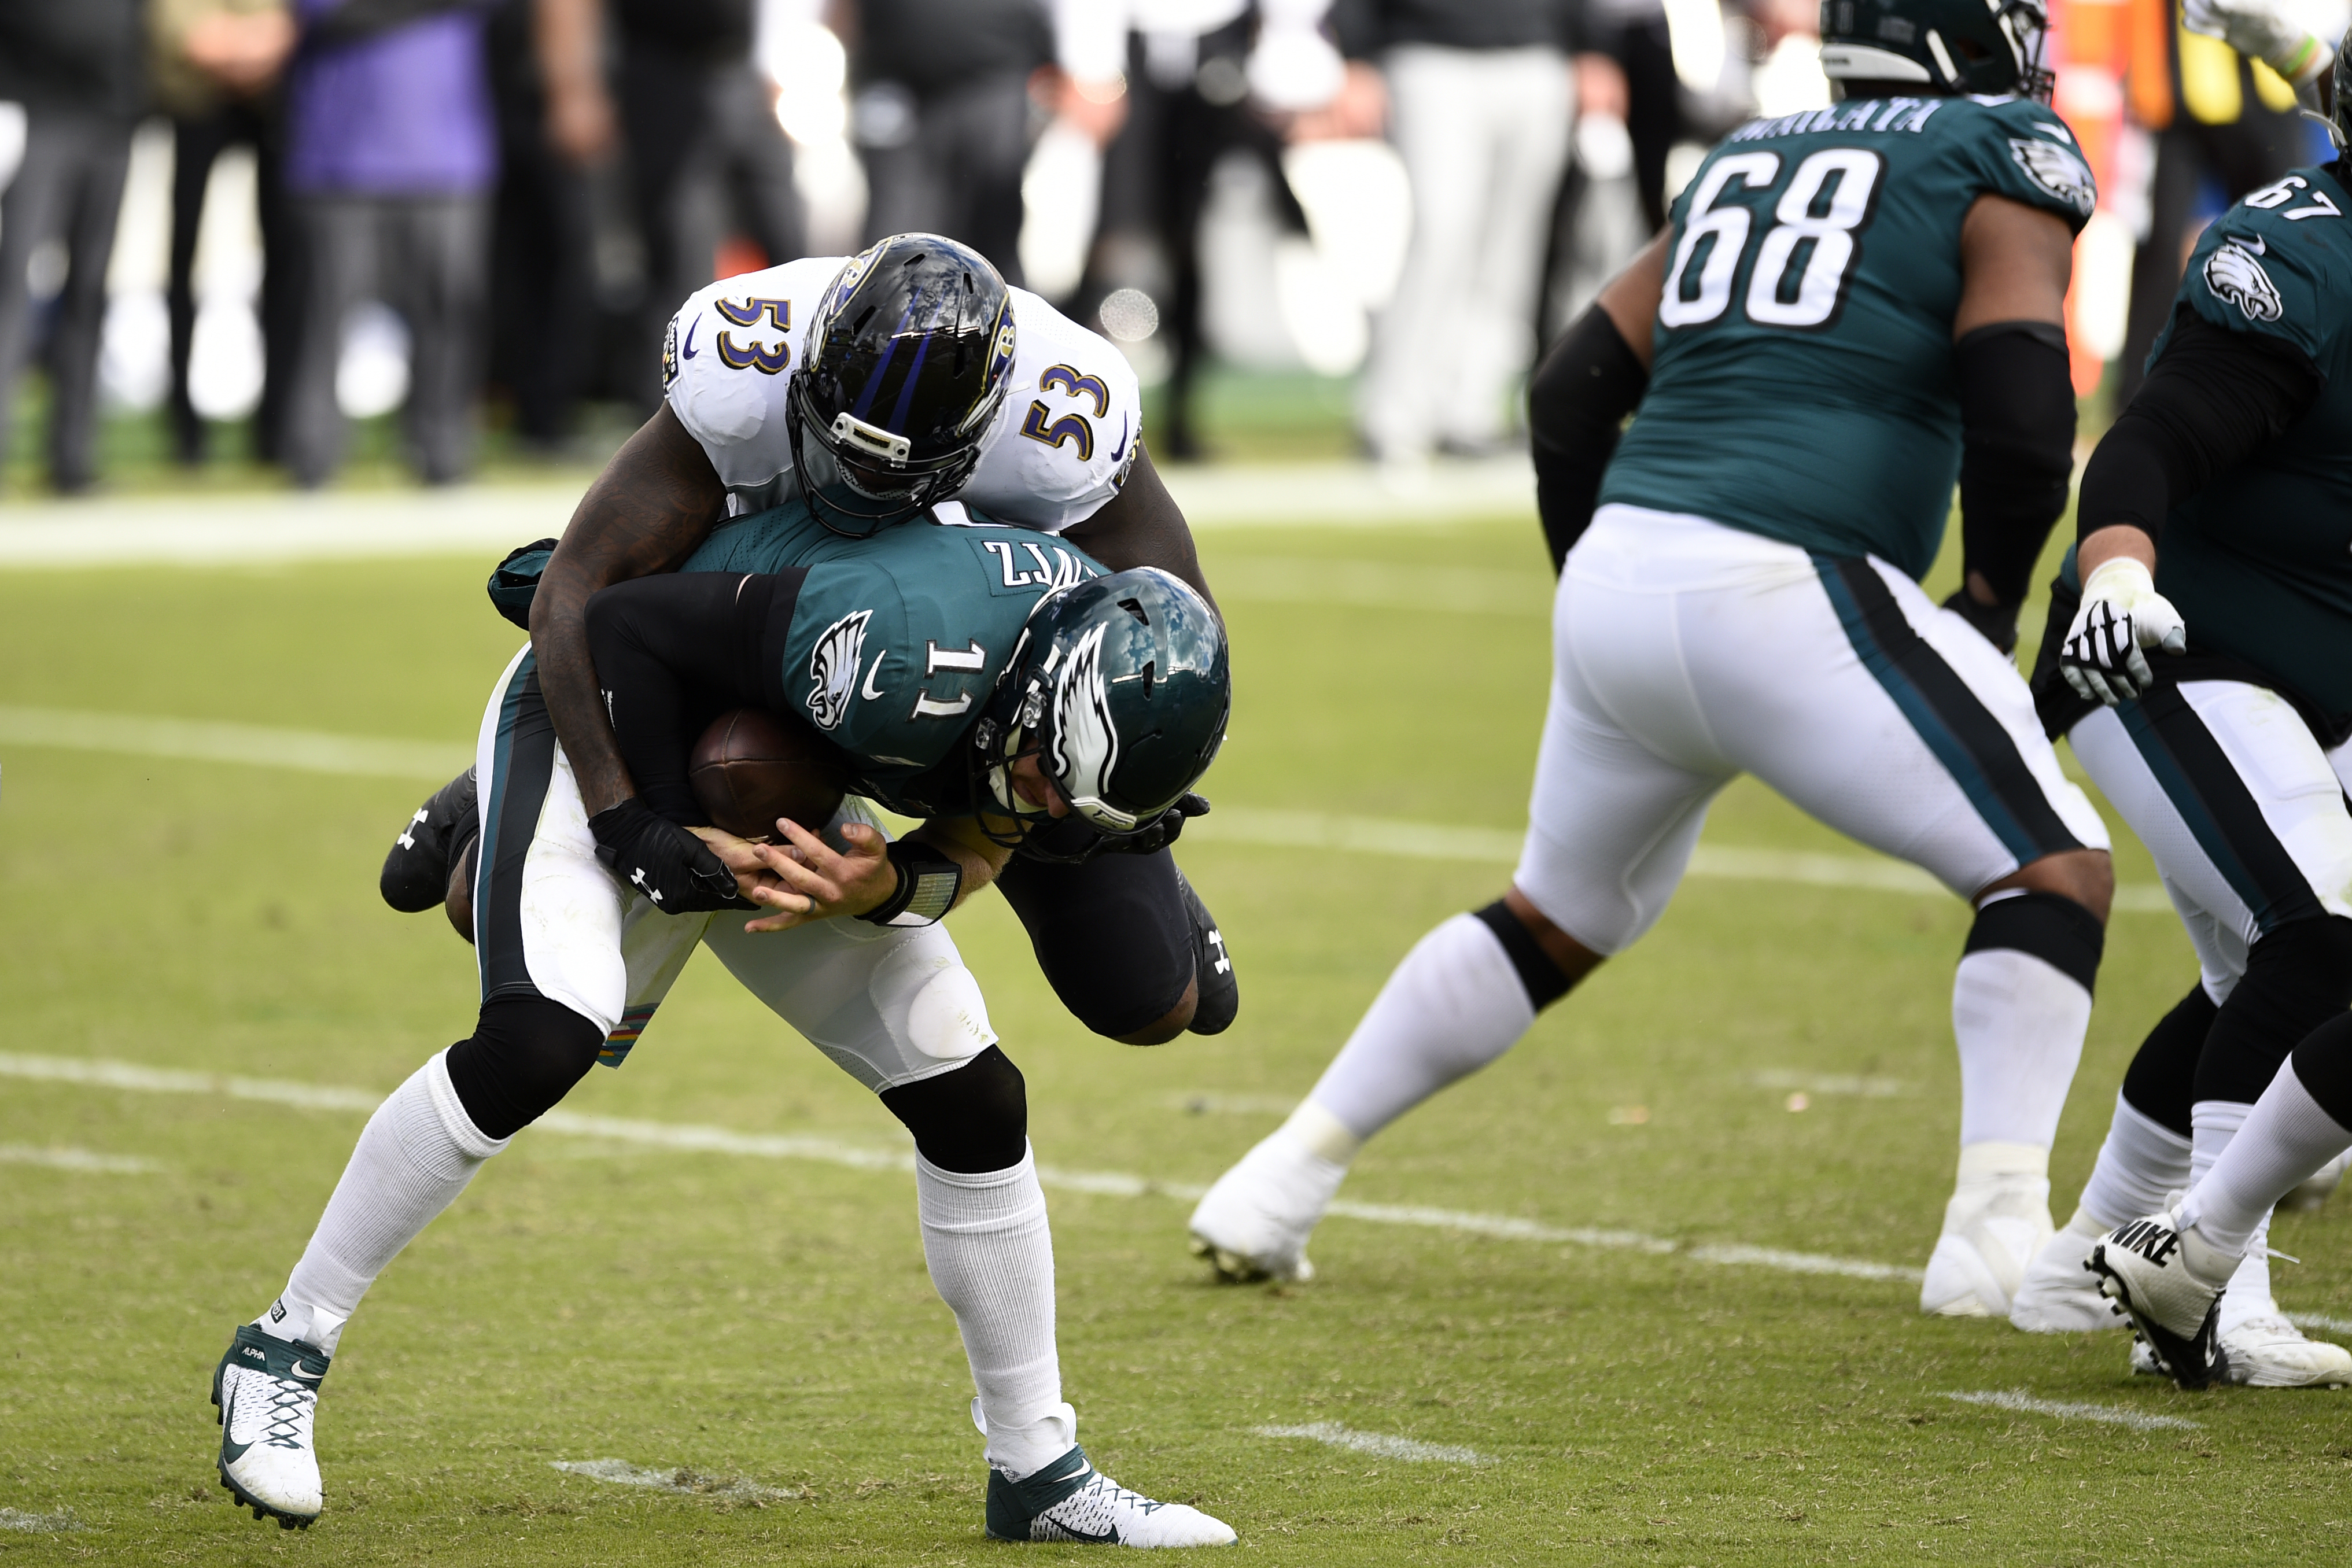 Big bet on eagles bovada sports betting legal